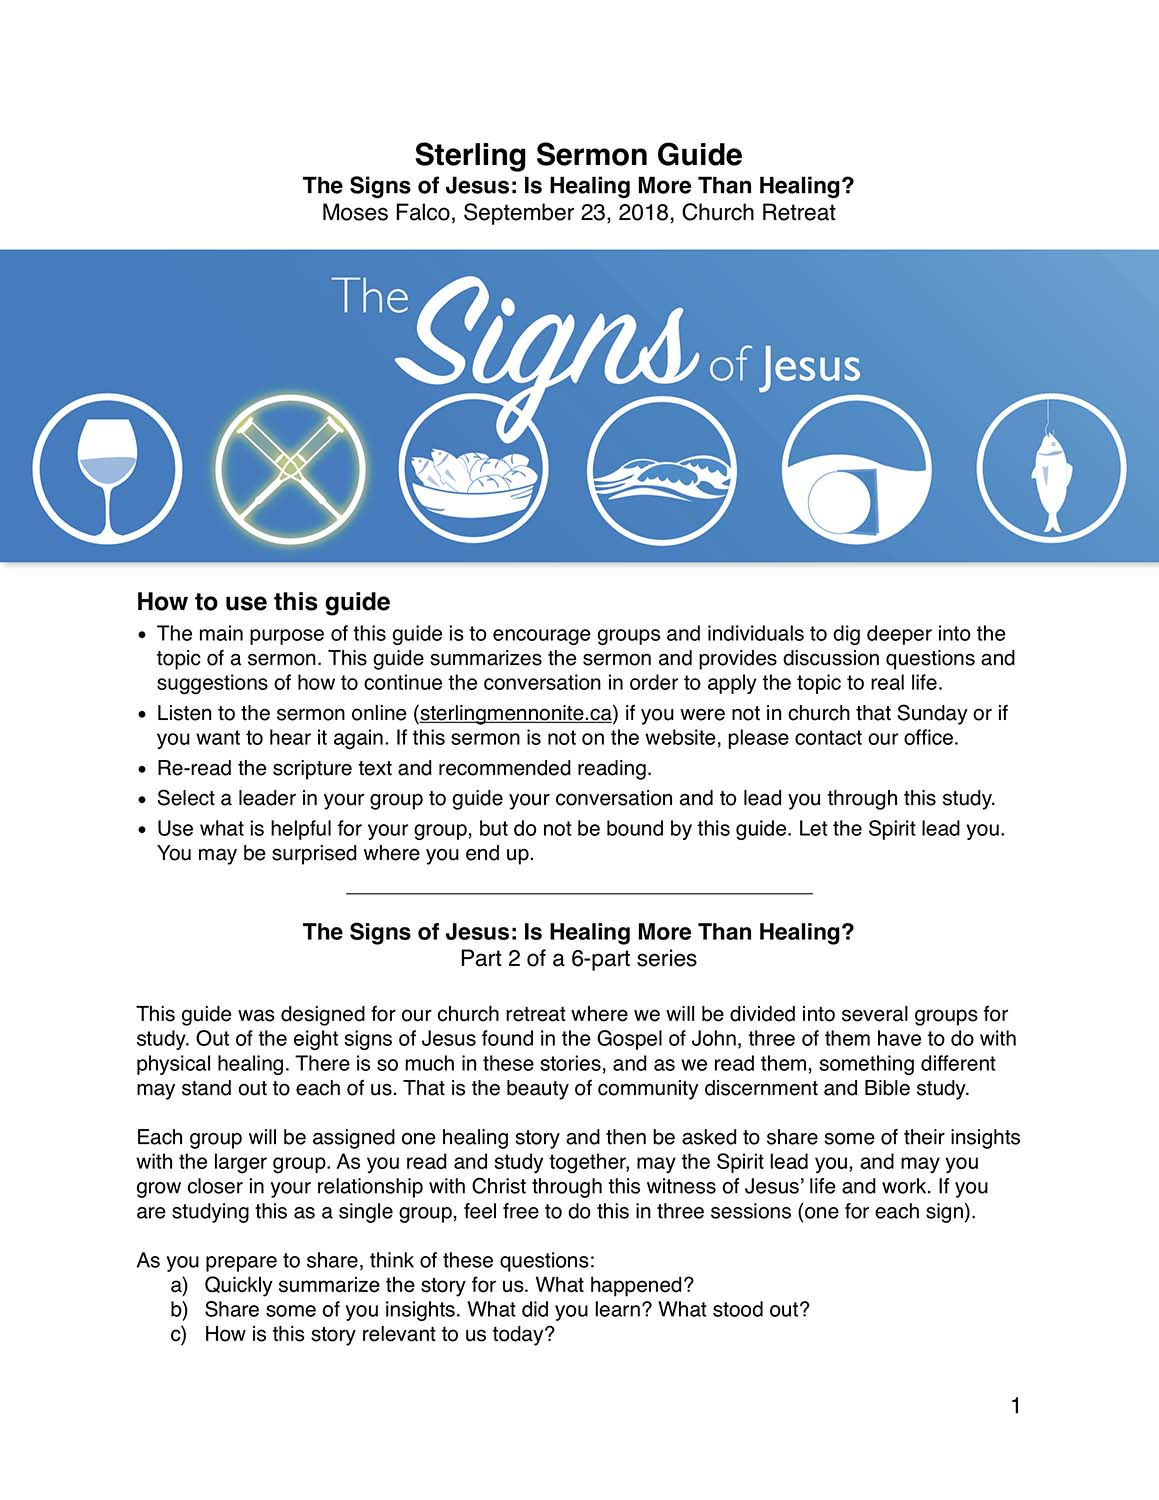 Signs 2: Is Healing More than Healing